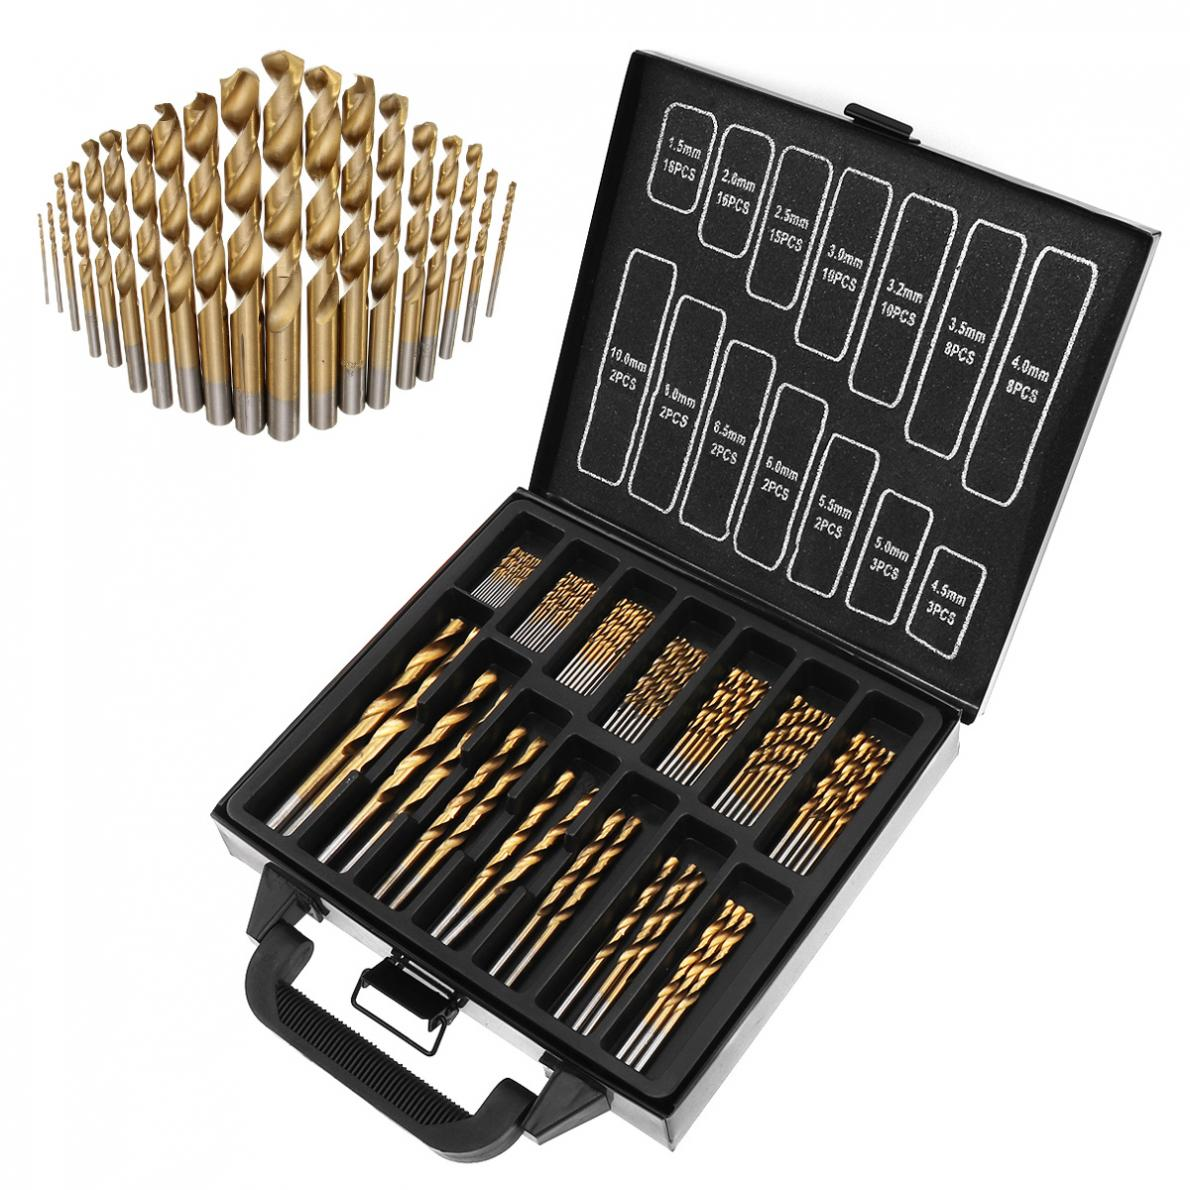 99pcs/lot Titanium Plating  Twist Drill Bits Coated Set 1.5MM-10MM Stainless Steel High Speed Steel Drilling Metal With Iron Box